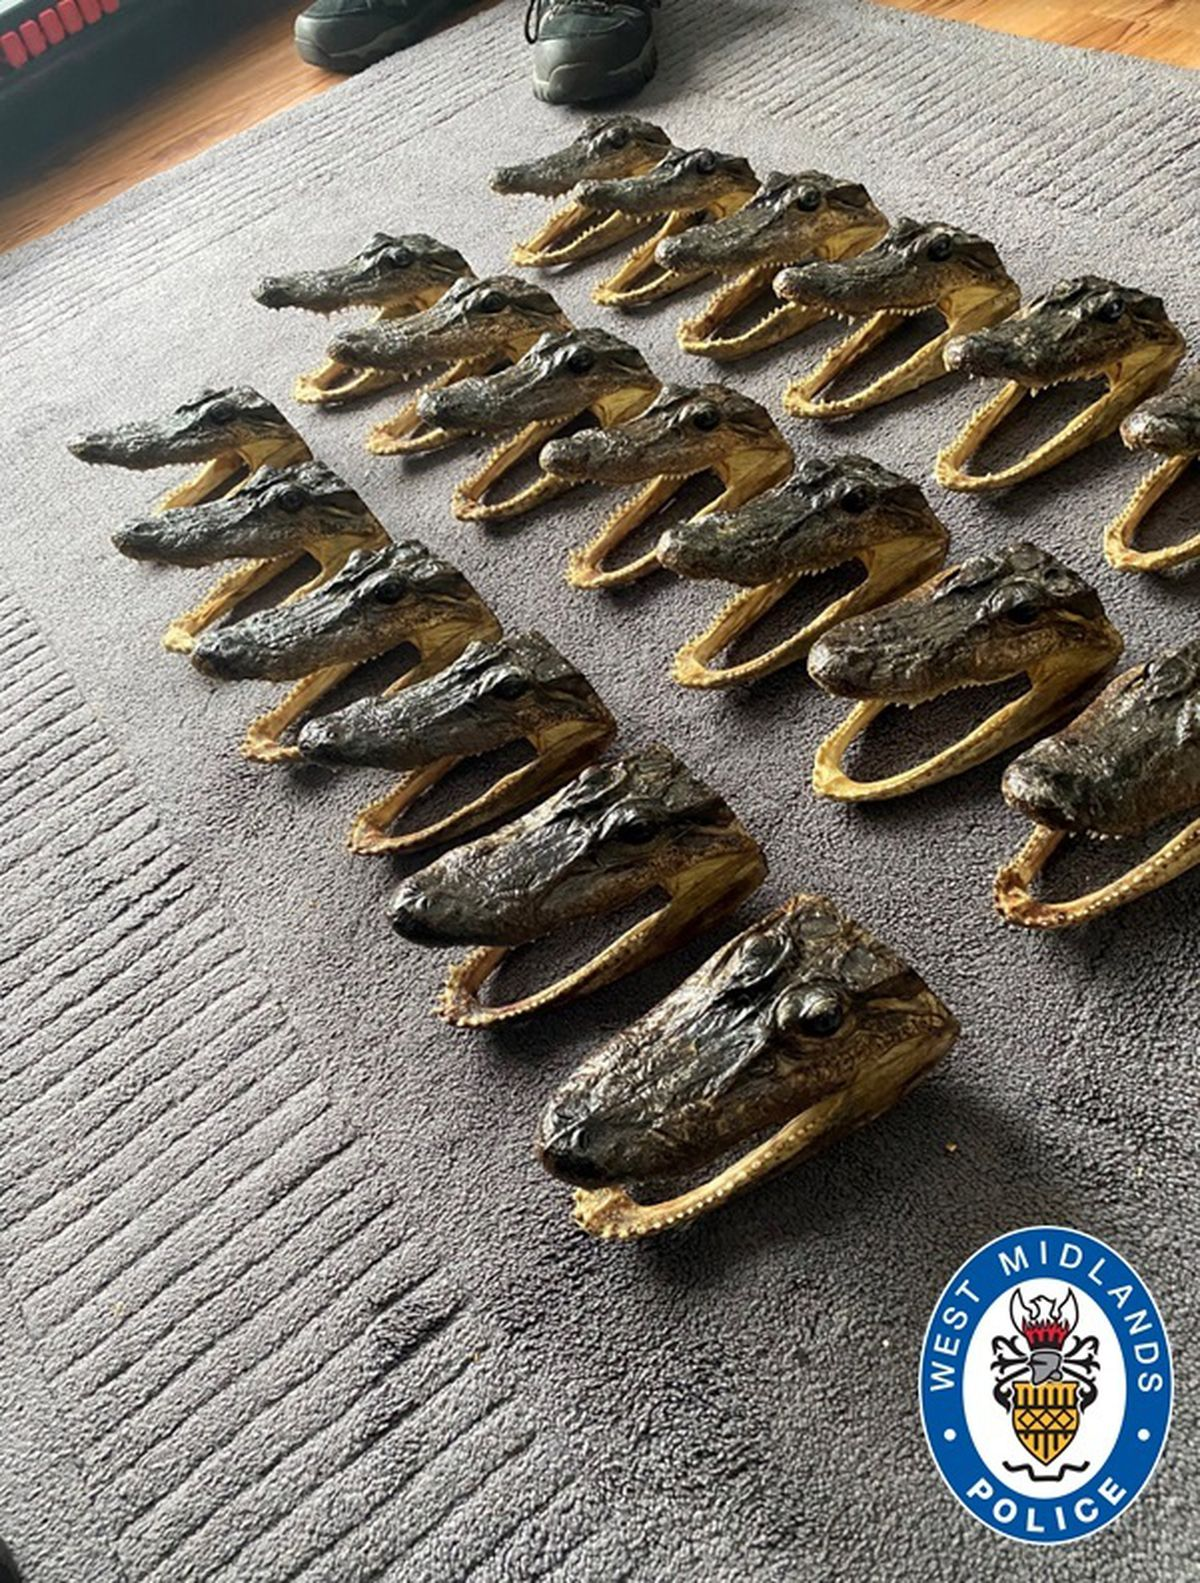 Some of the alligator heads seized in Perry Barr